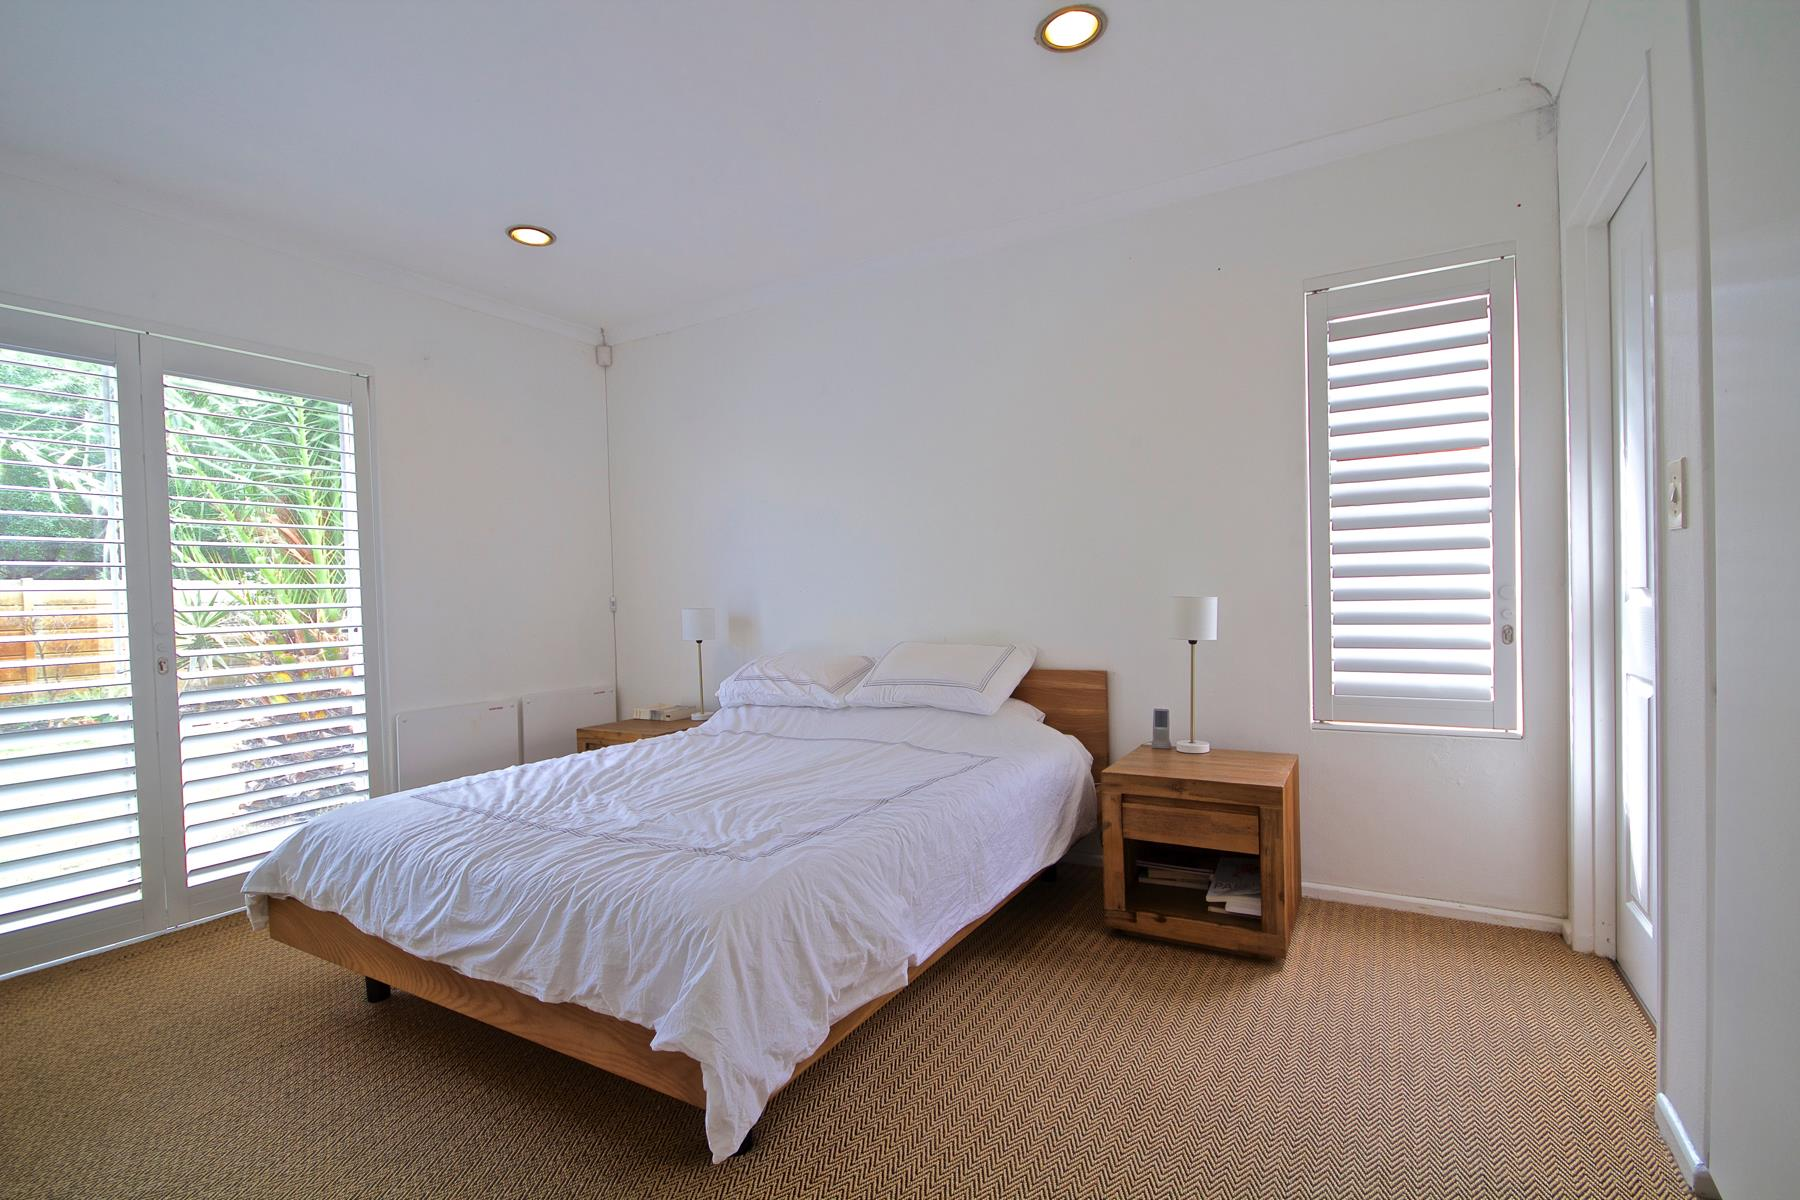 4 Bedroom House For Sale in Sunset Beach